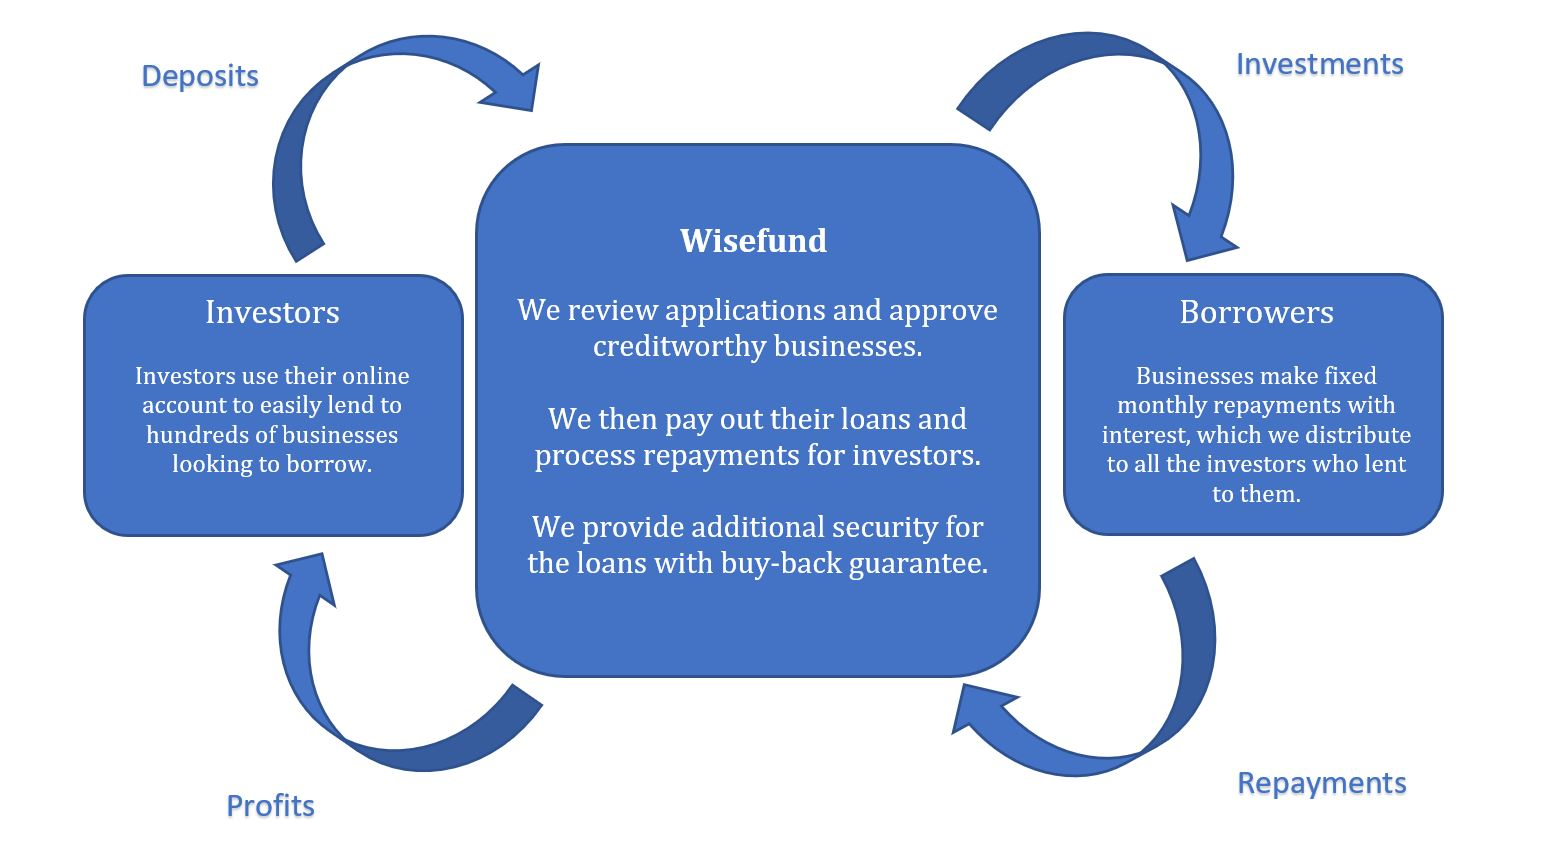 how wisefund works